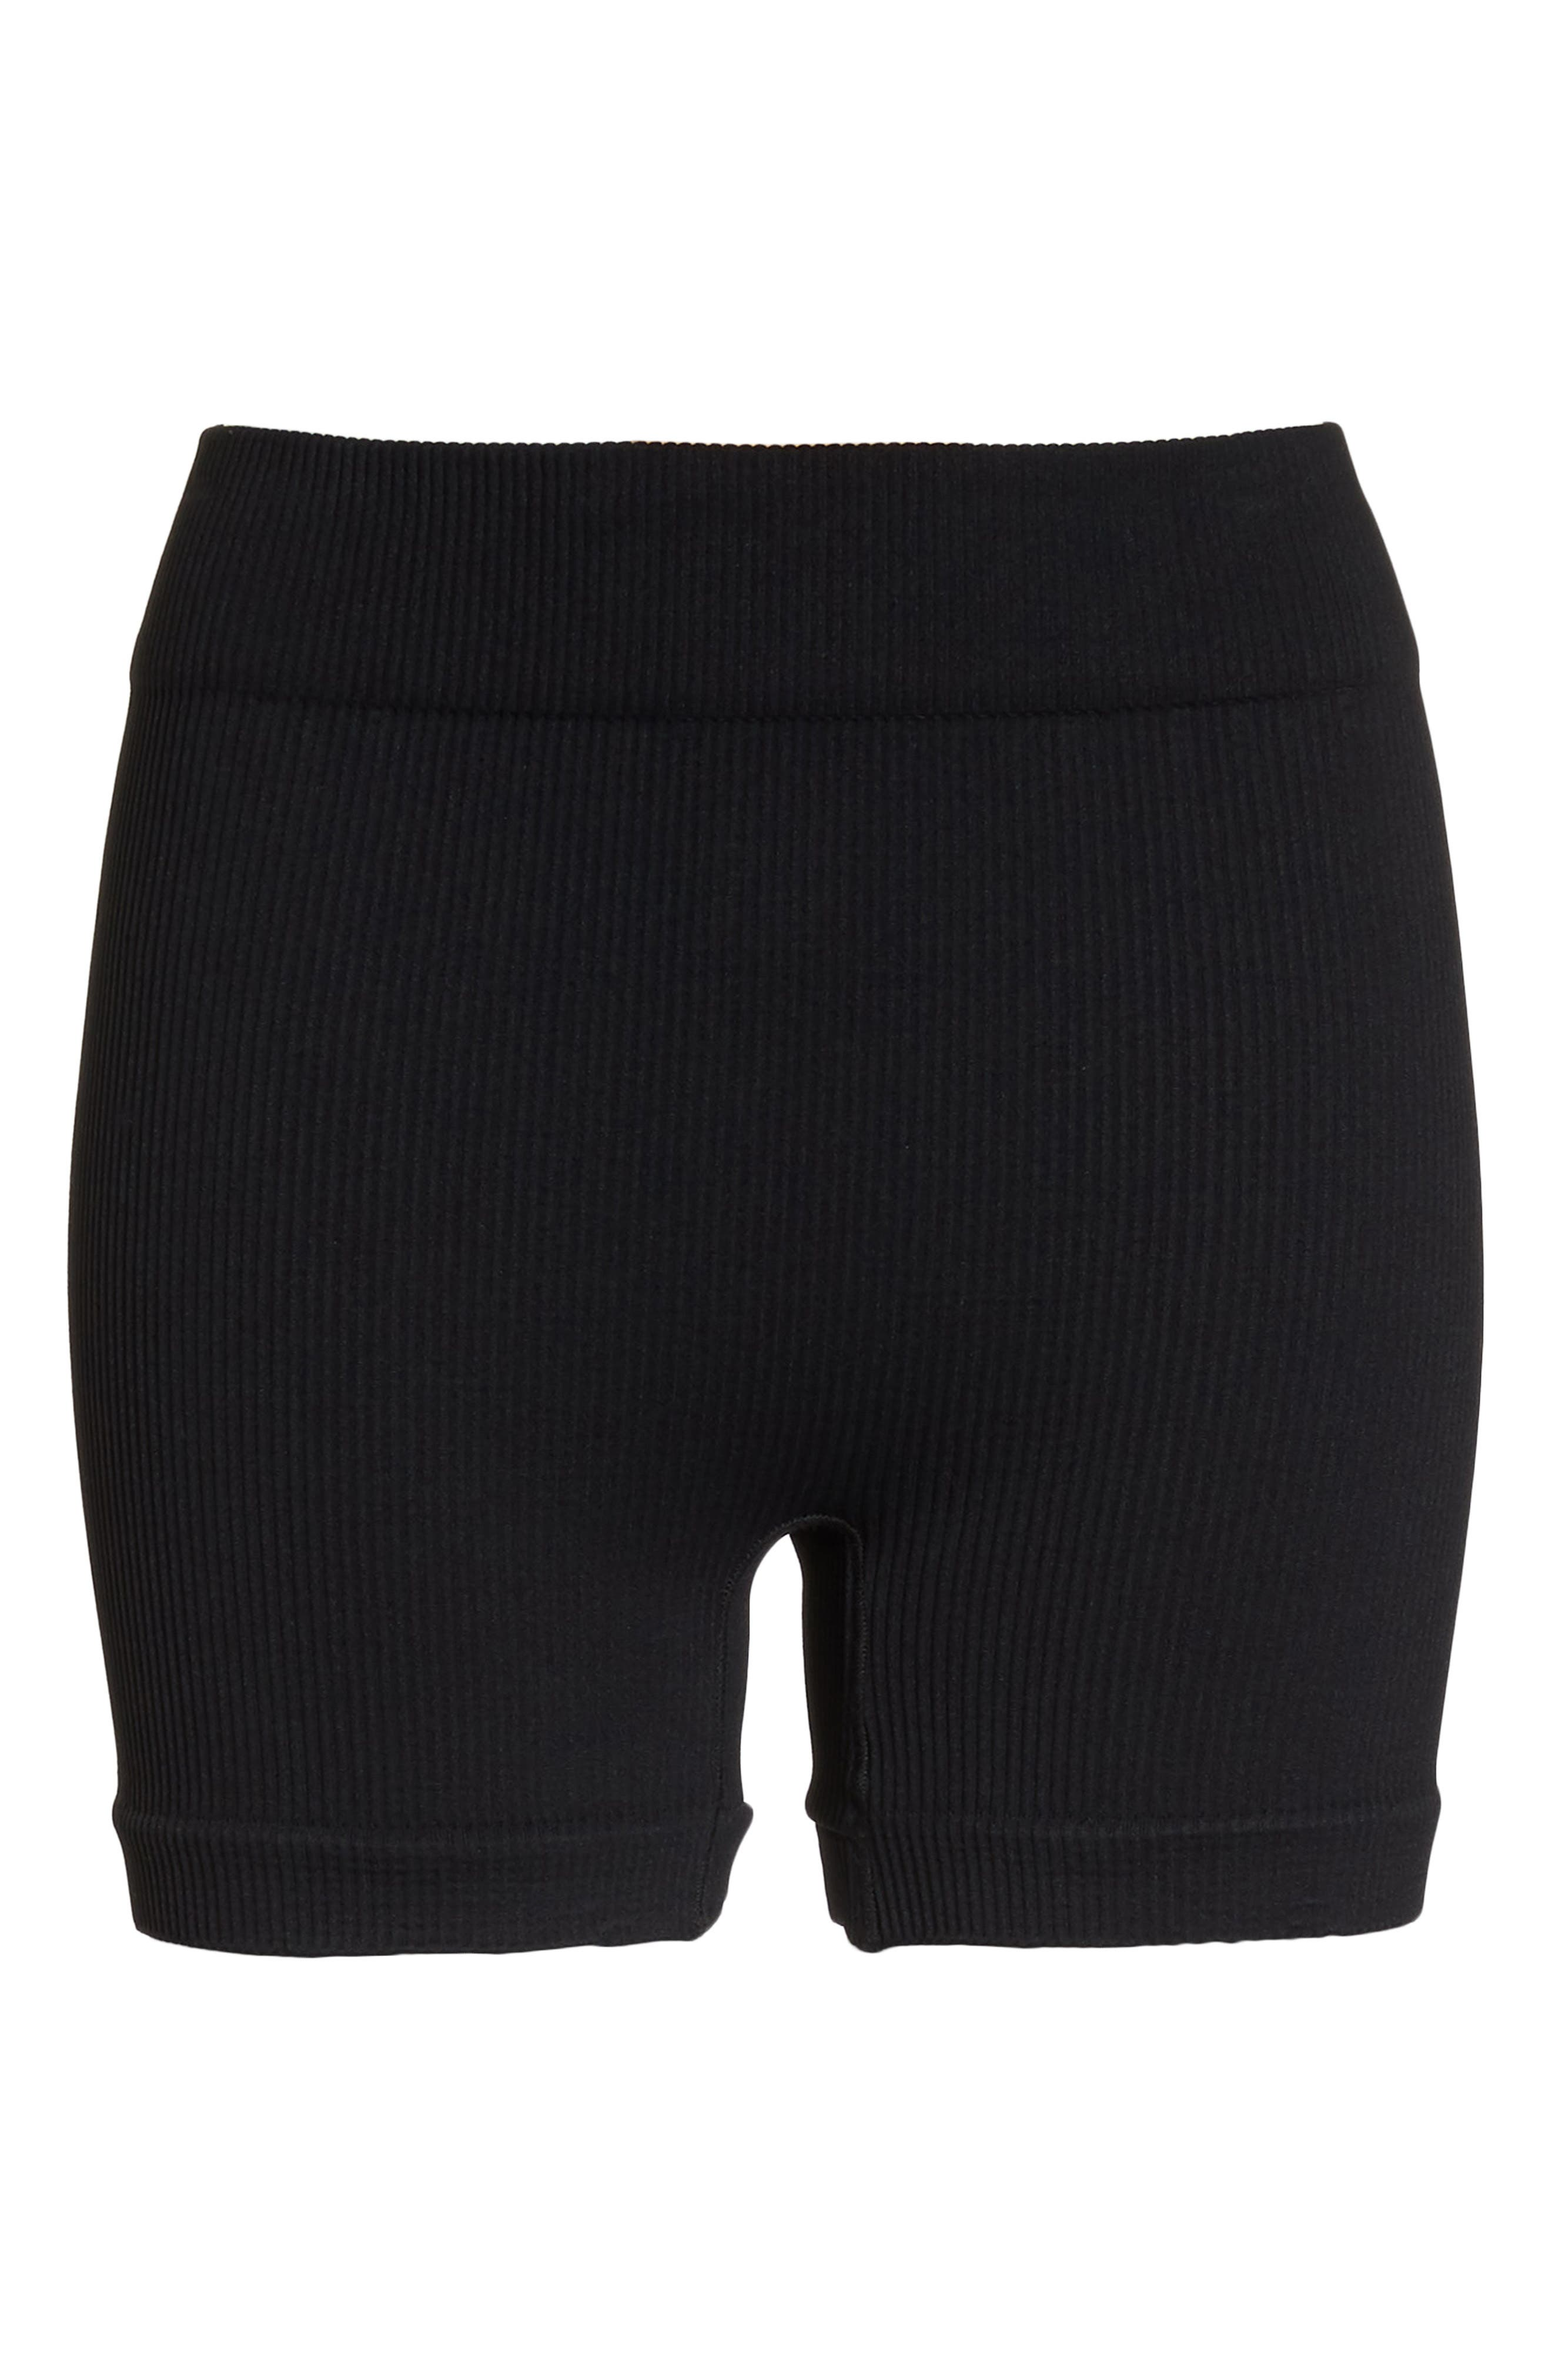 Free People Seamless Shorts,                             Alternate thumbnail 12, color,